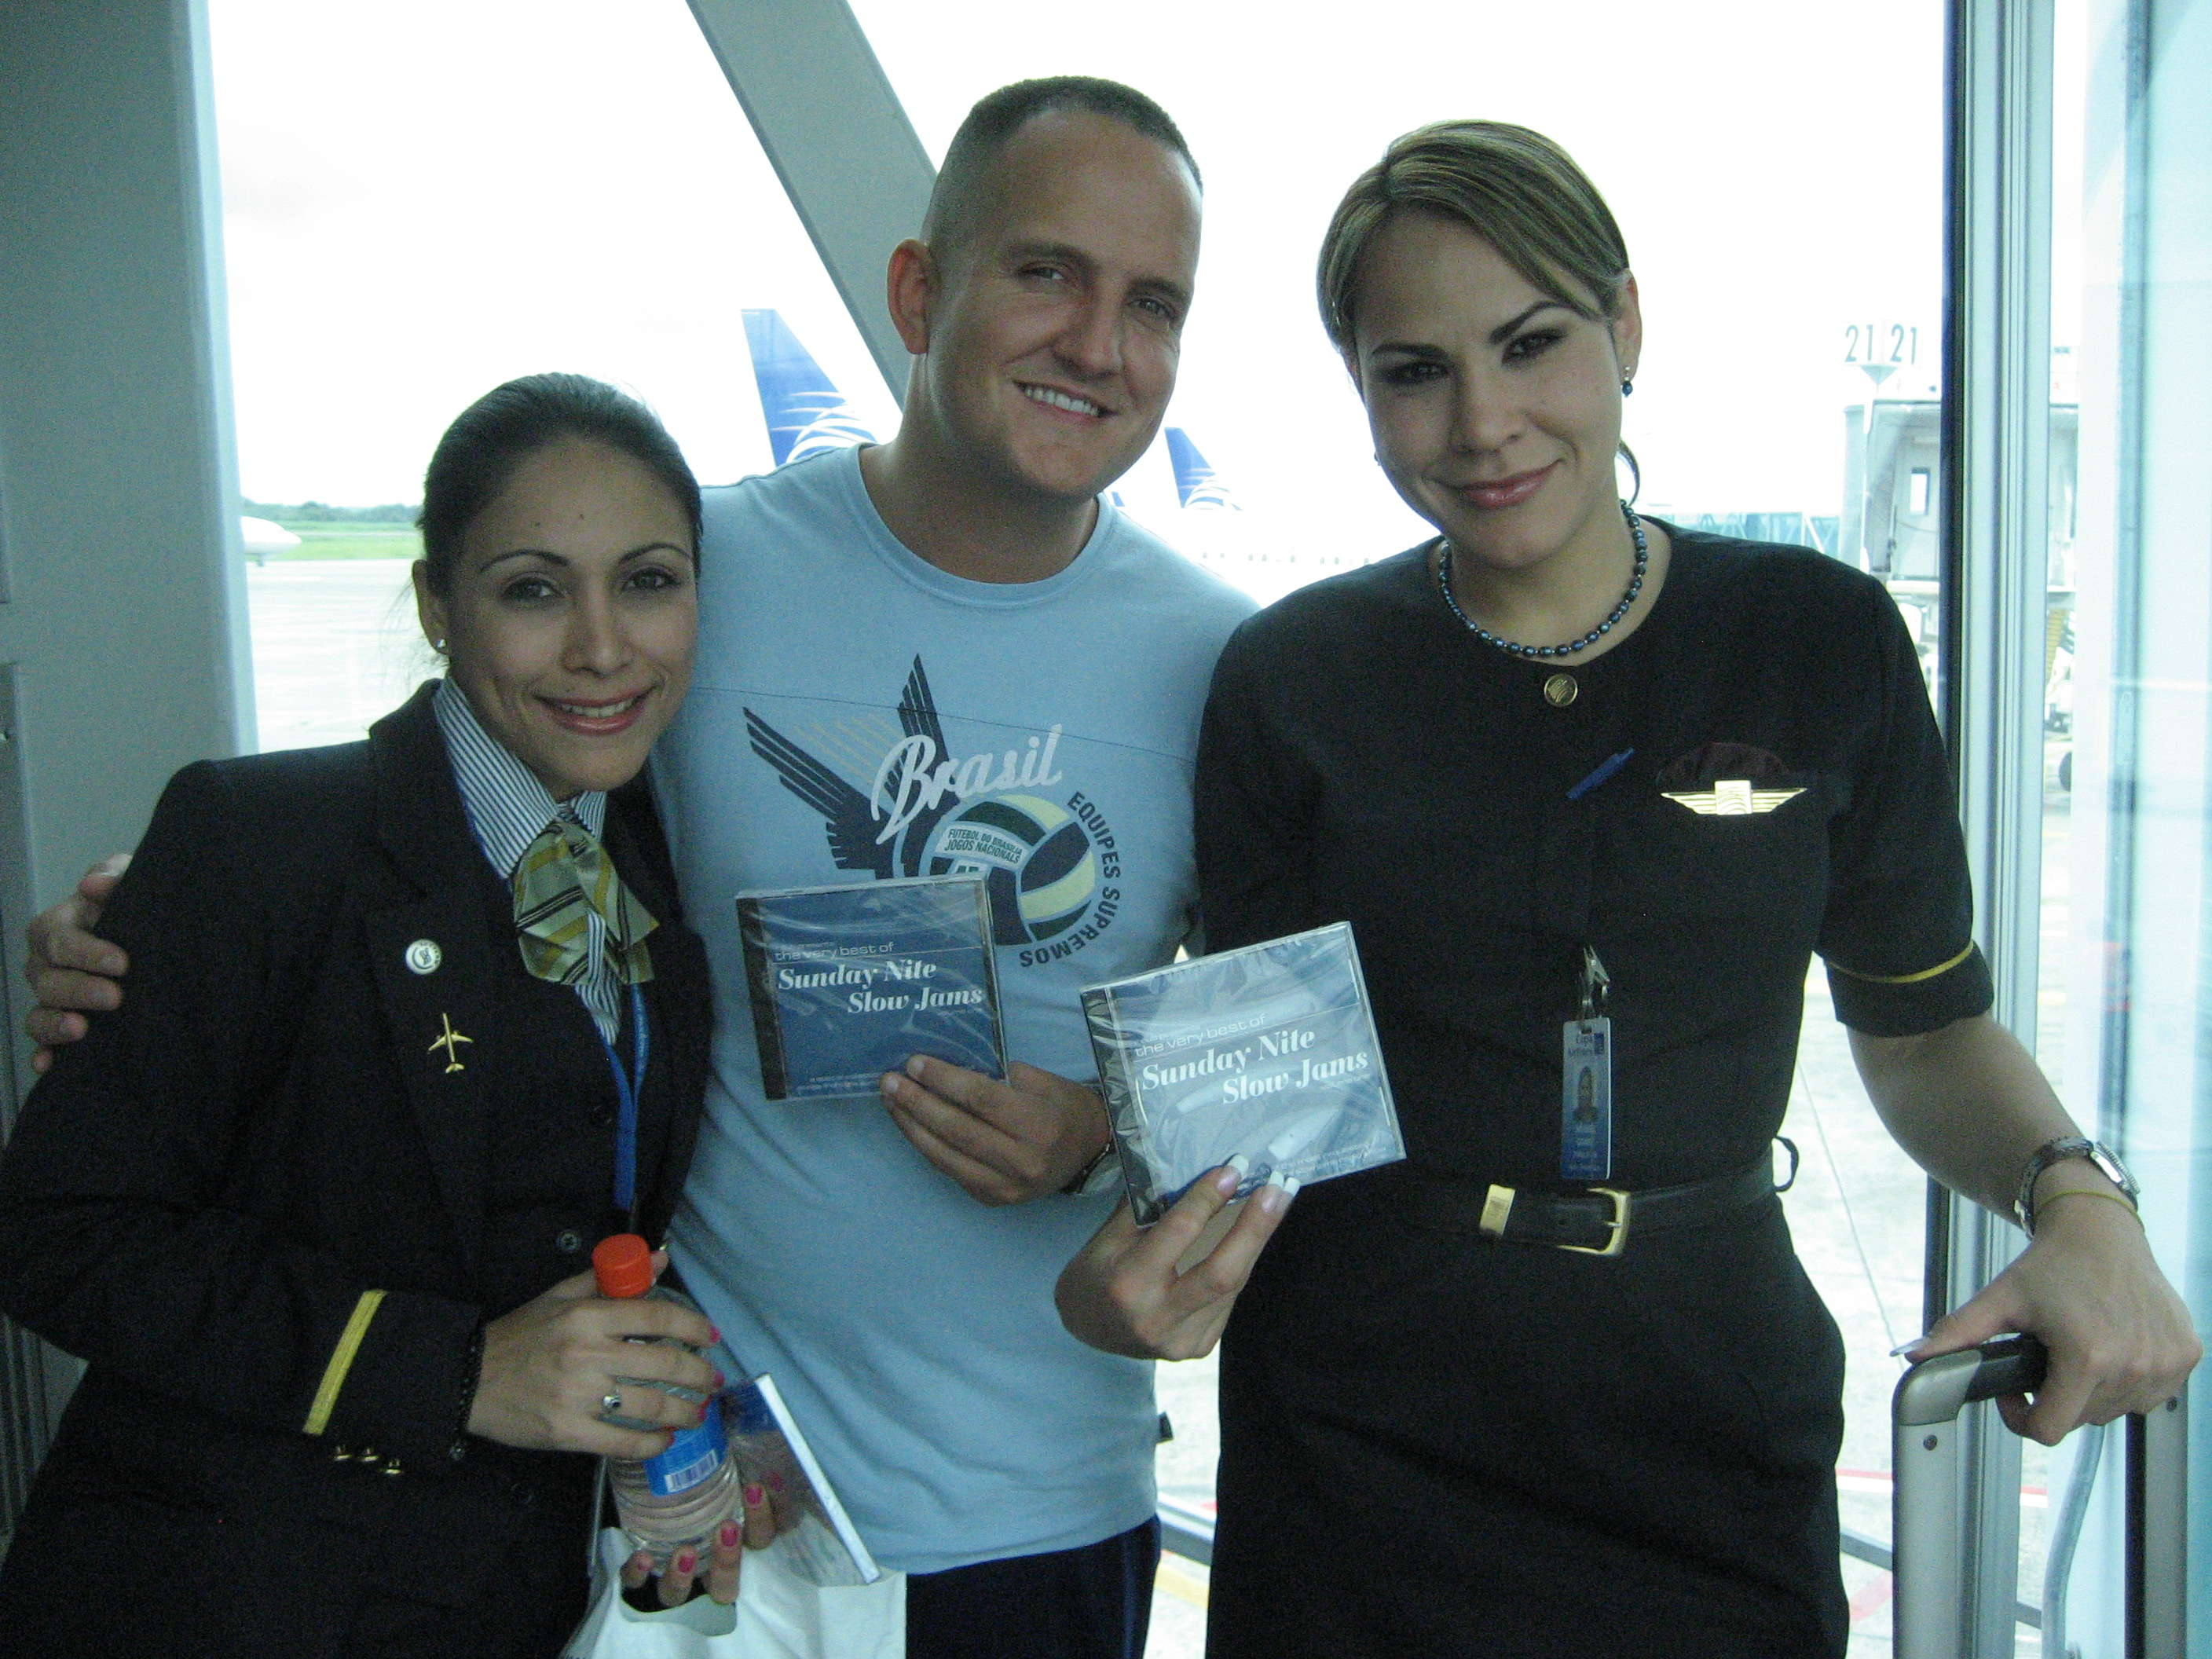 The lovely flight attendants of Copa Airlines - Panama